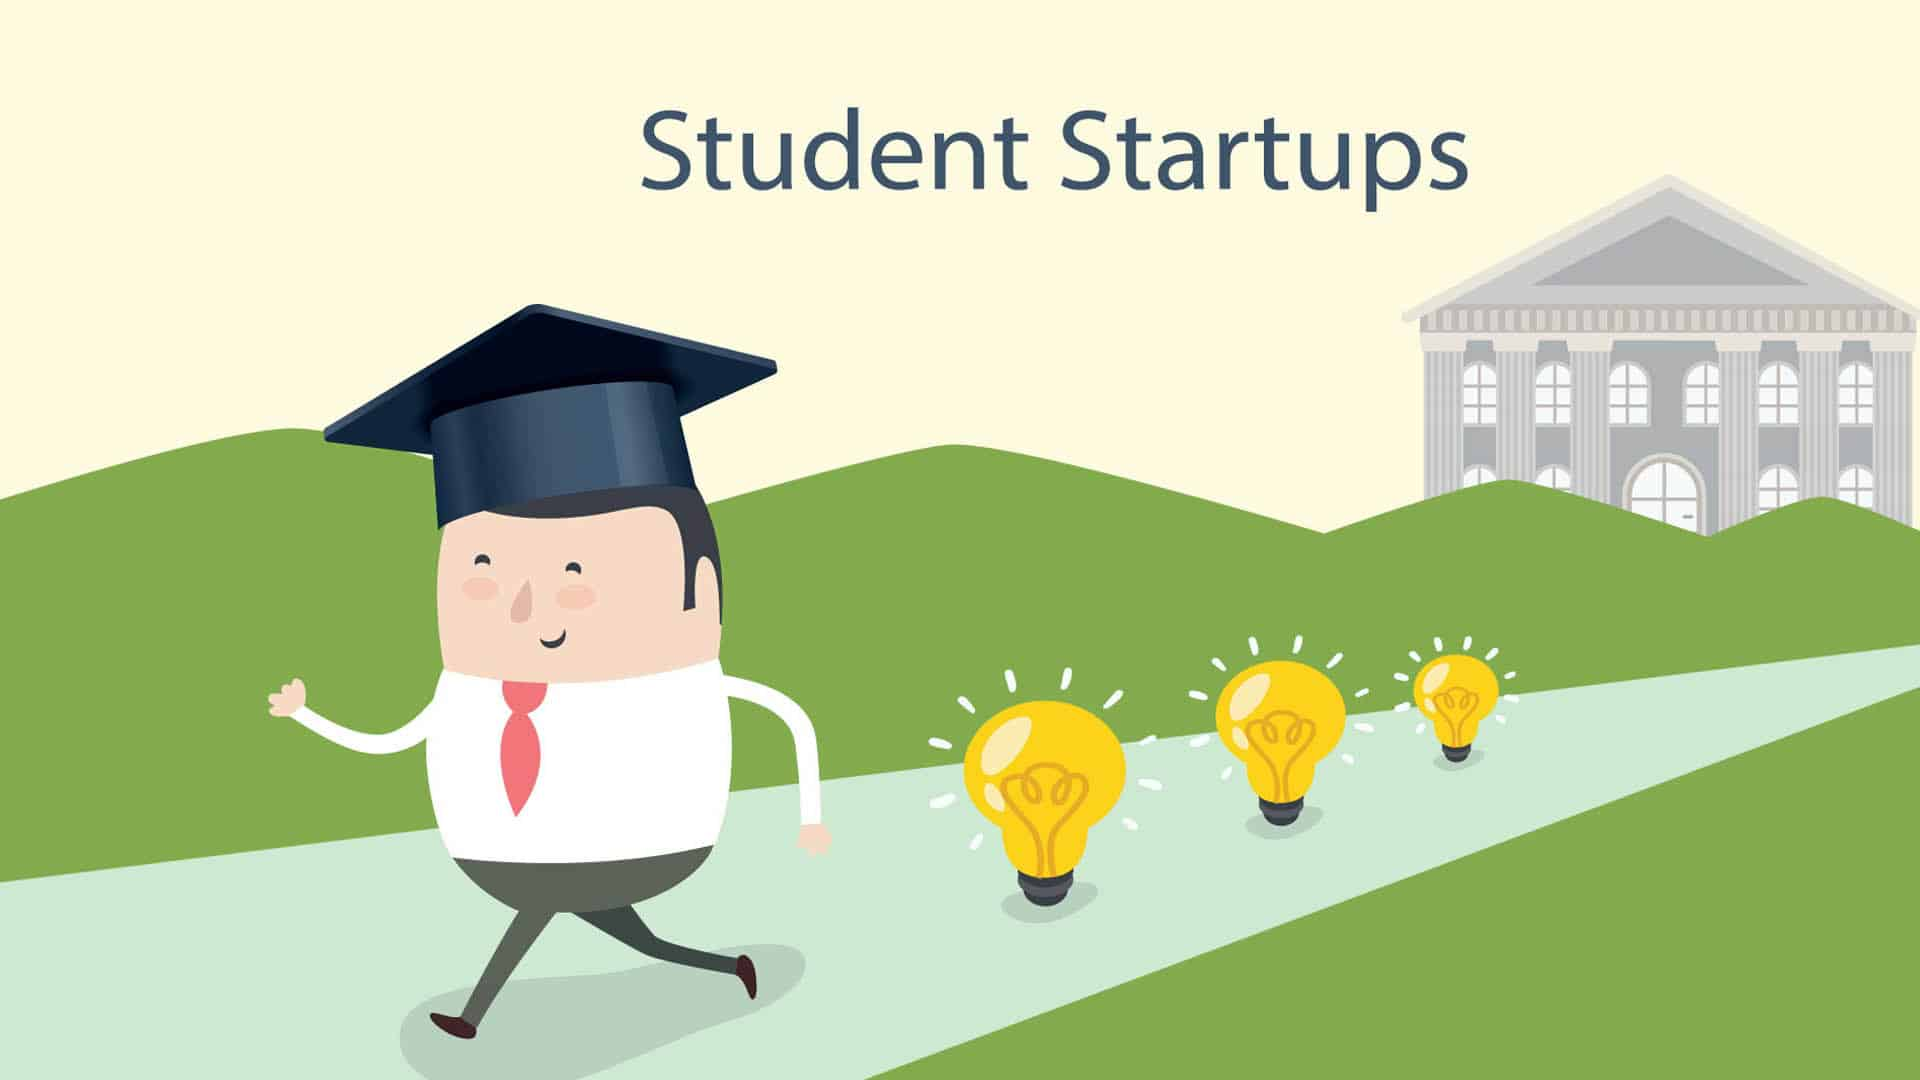 IIM-A, BITS grads launch one million USD fund to support & invest in student startups